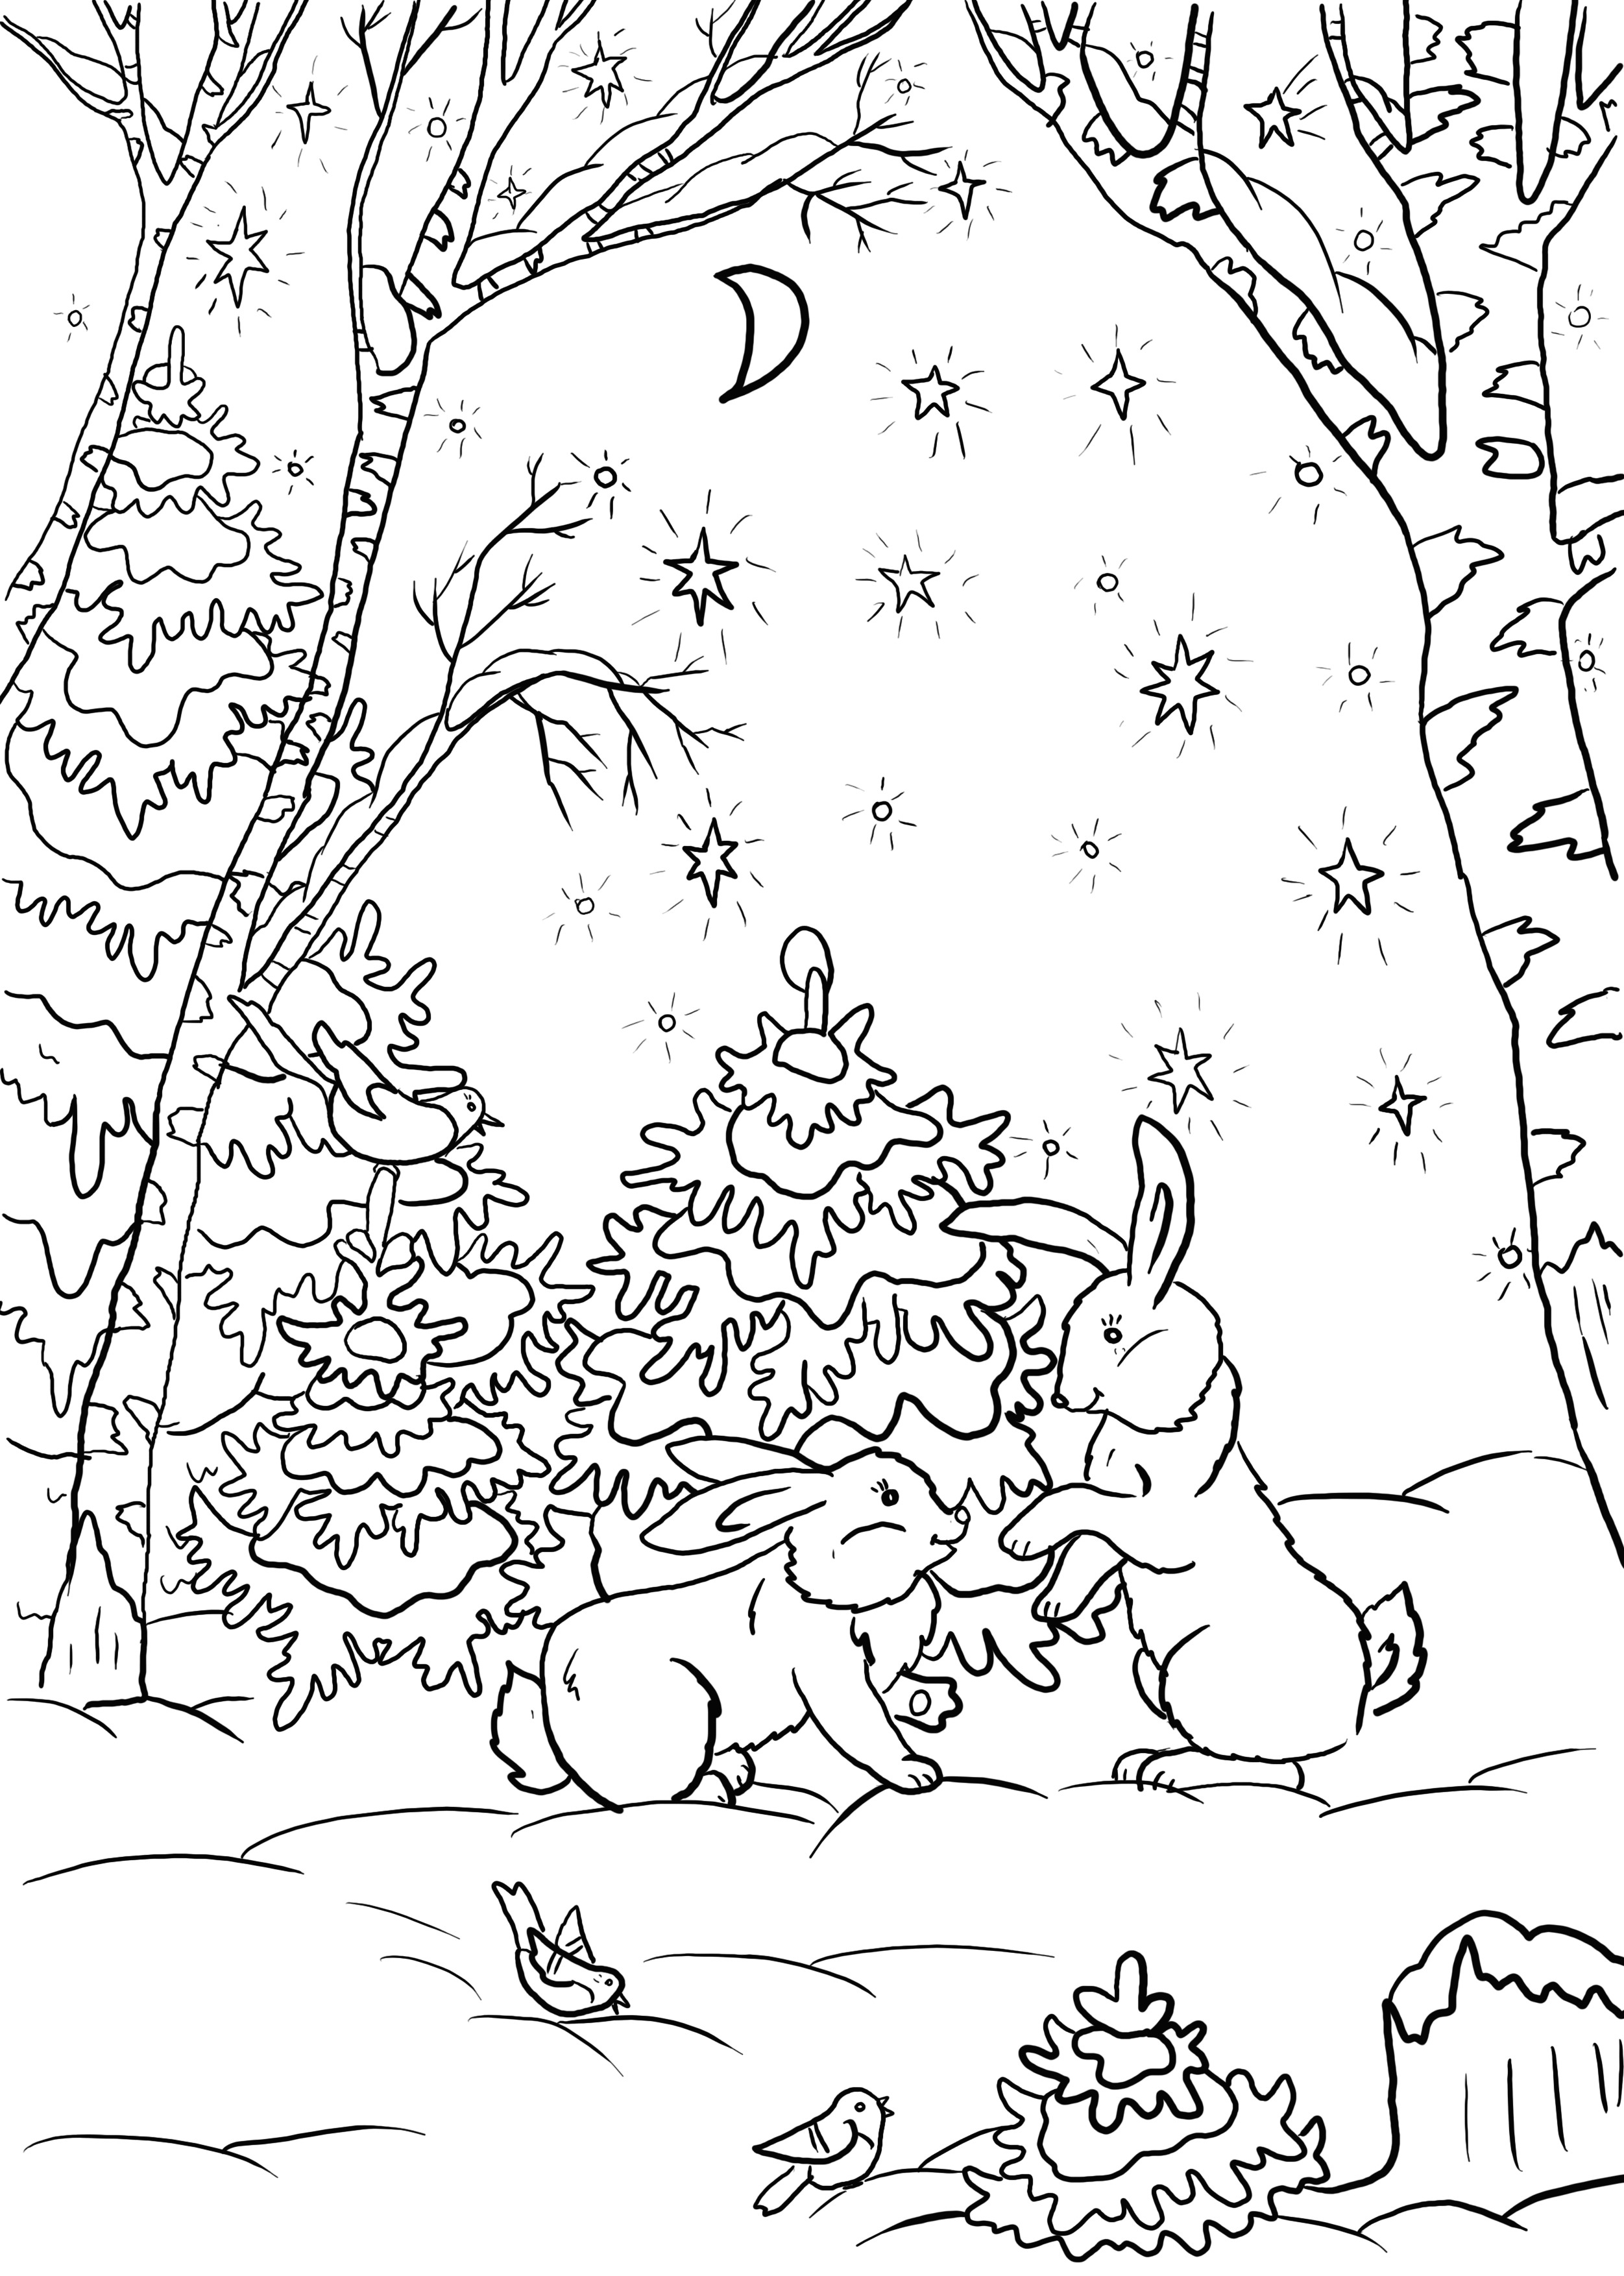 forest coloring page jungle forest coloring pages for adults coloring page coloring forest